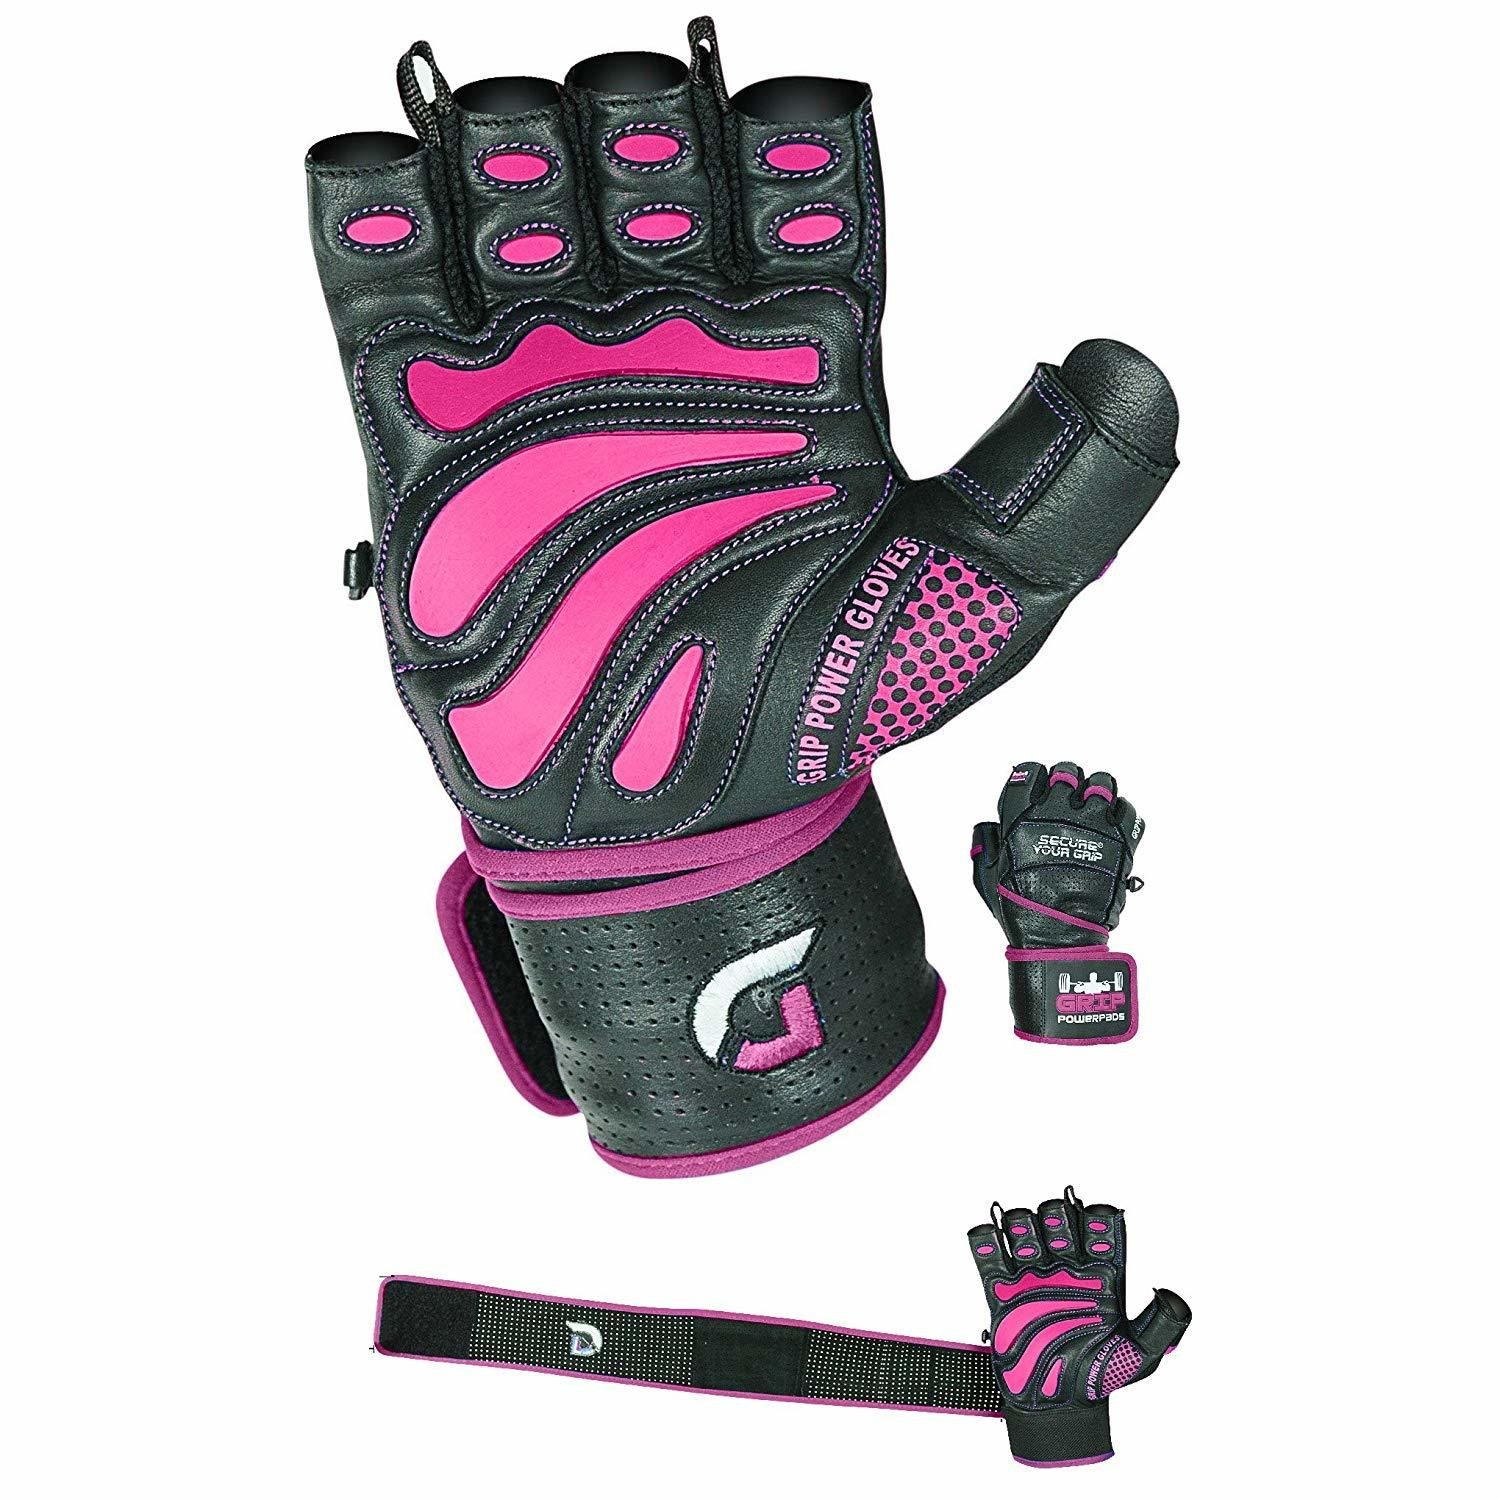 """Women Elite Leather Gym Gloves with Built in 2"""" Wide Wrist Wraps Design for Weight Lifting, Power Lifting, Bodybuilding & Strength Training Workout Exercises"""